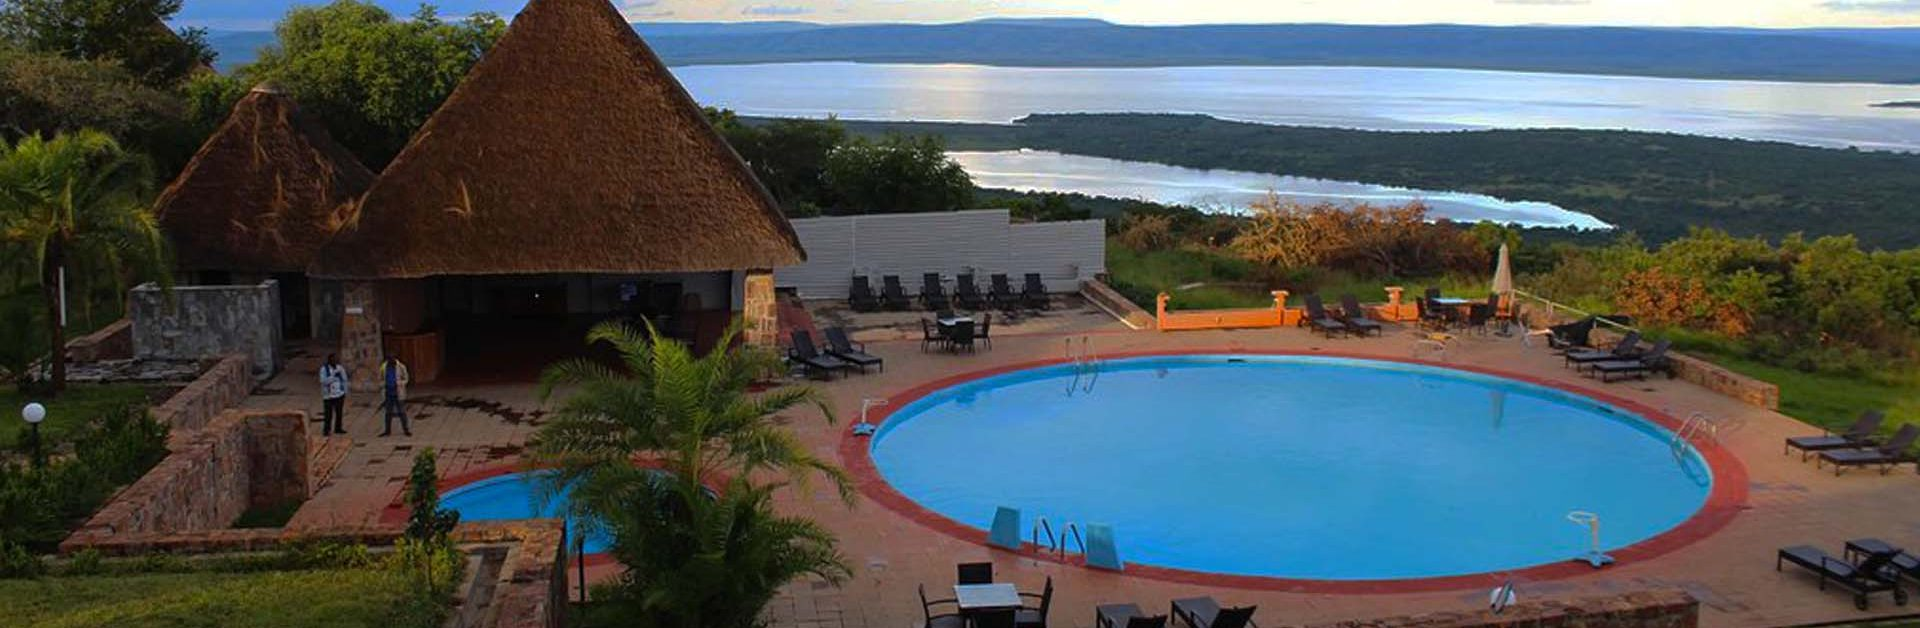 cropped view of akagera game lodge